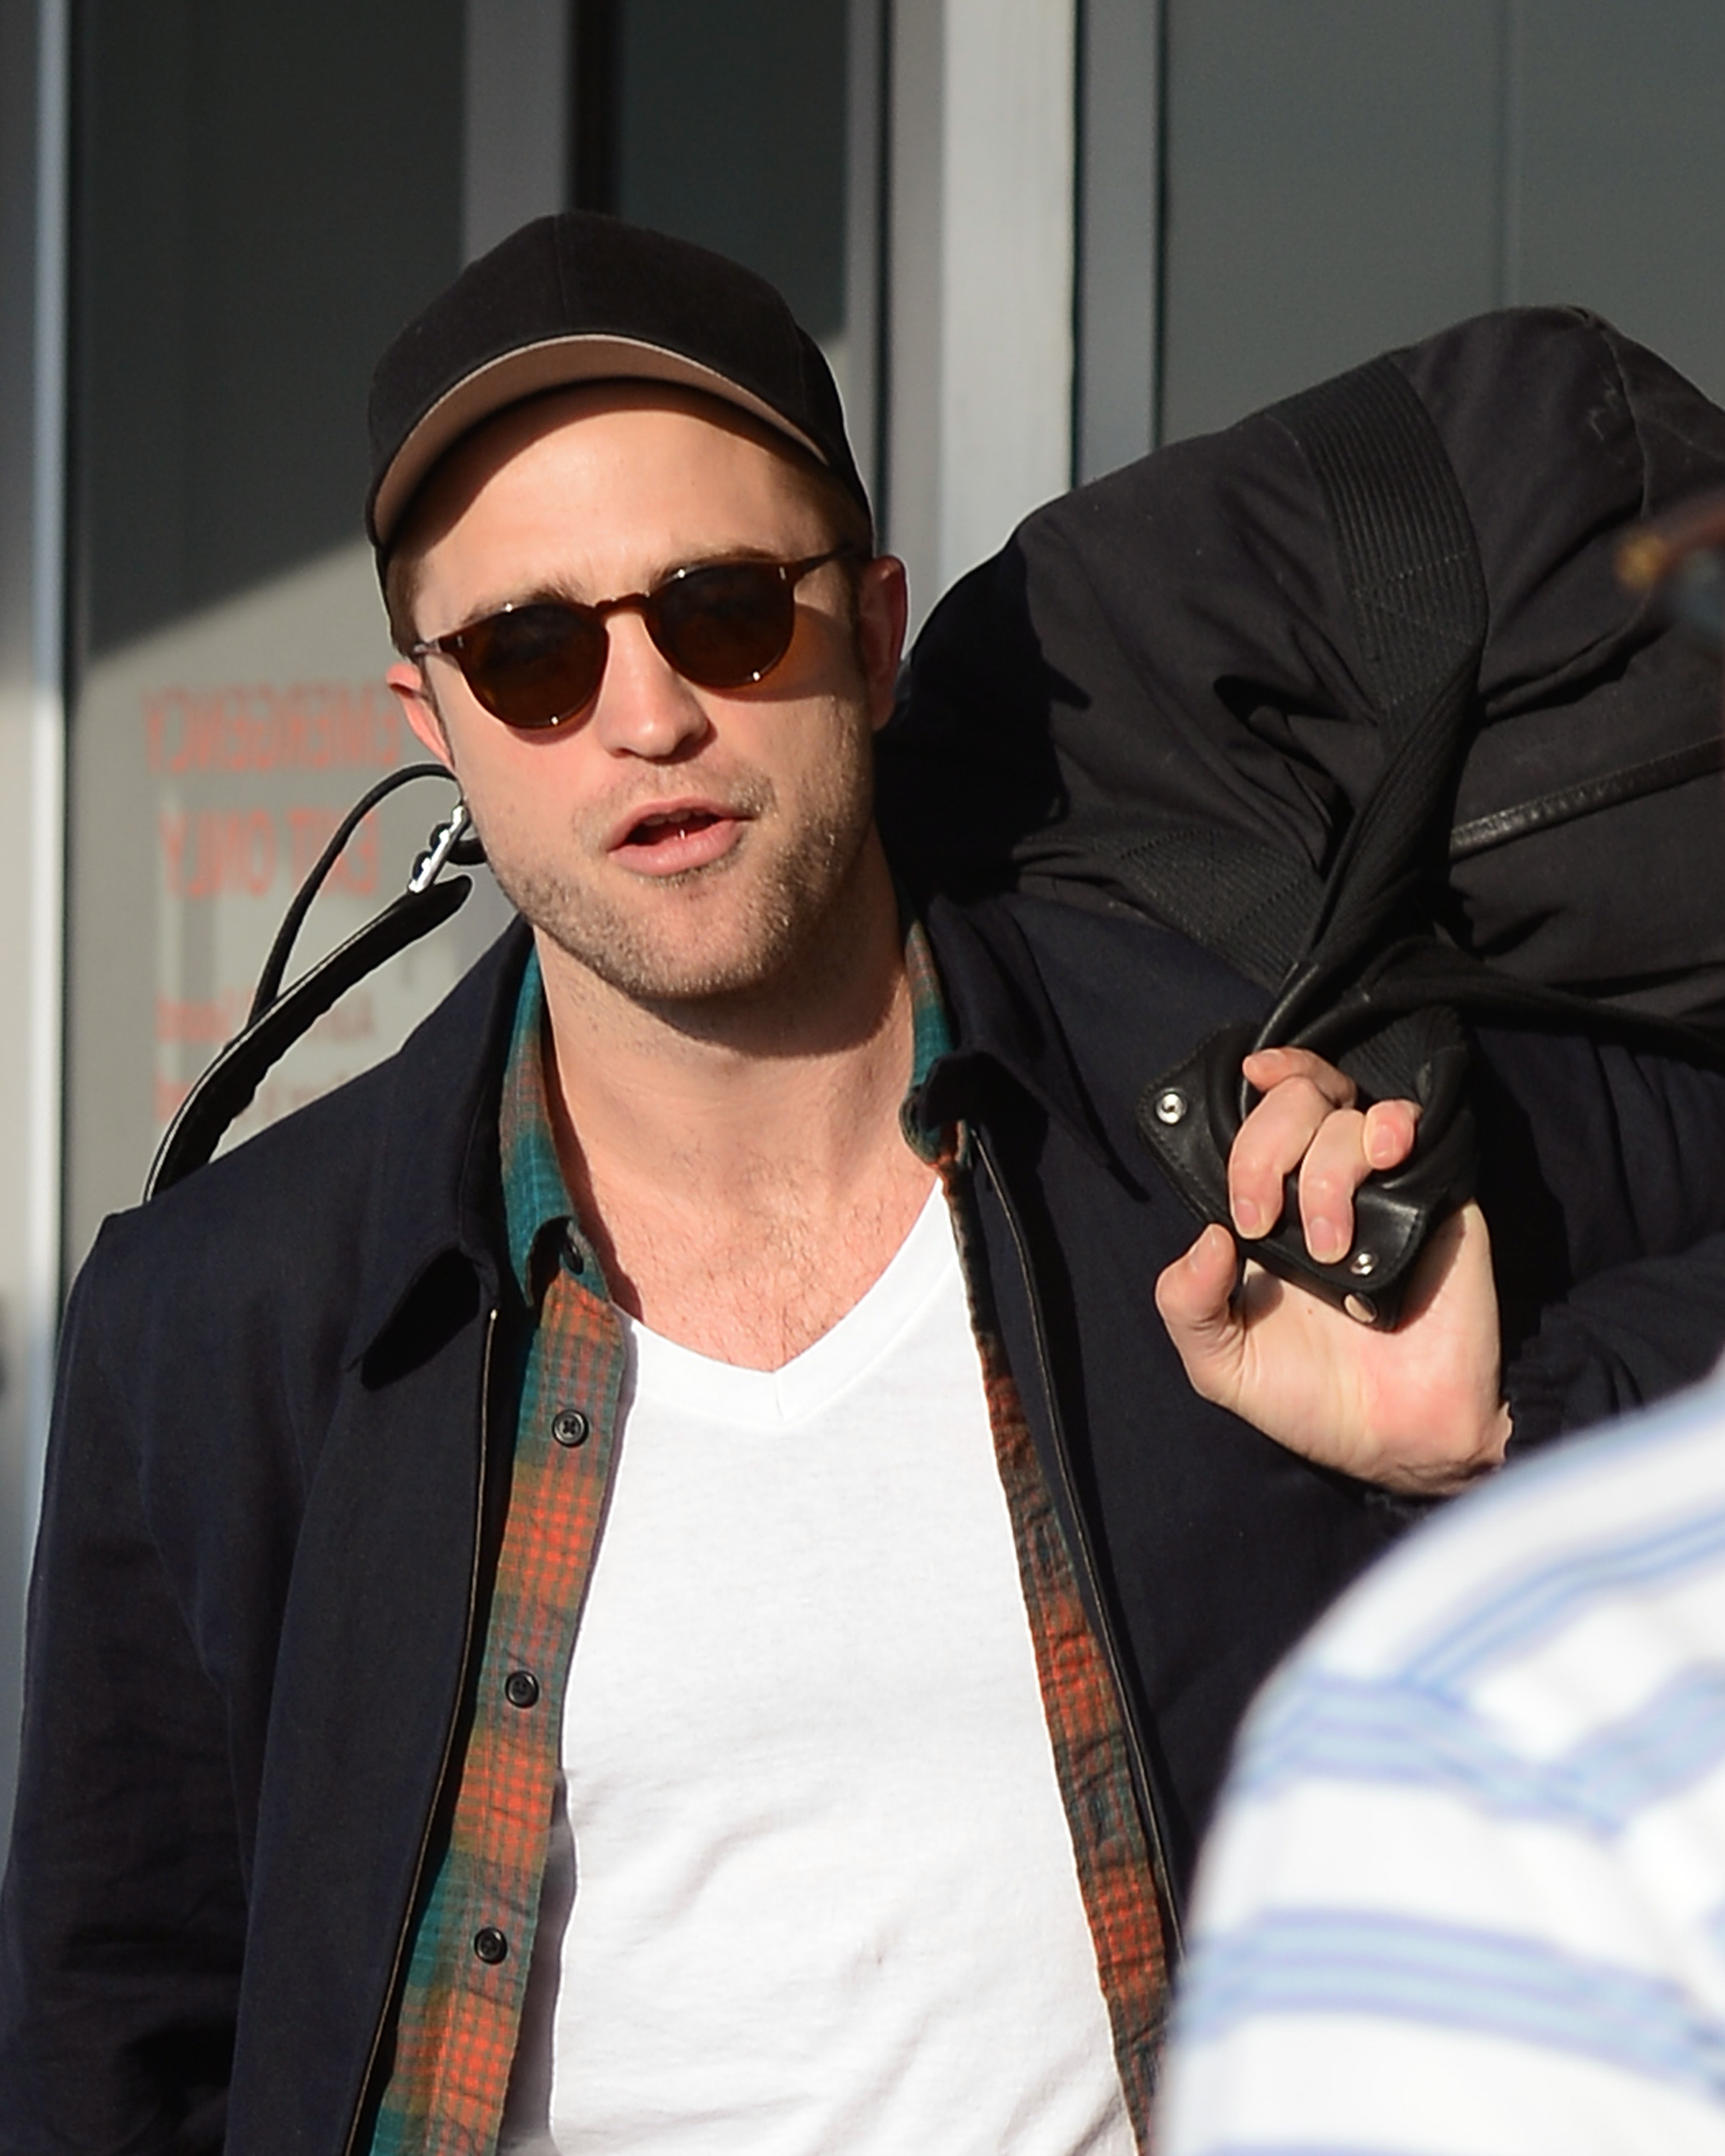 Fotos de Robert Pattinson no aeroporto JFK